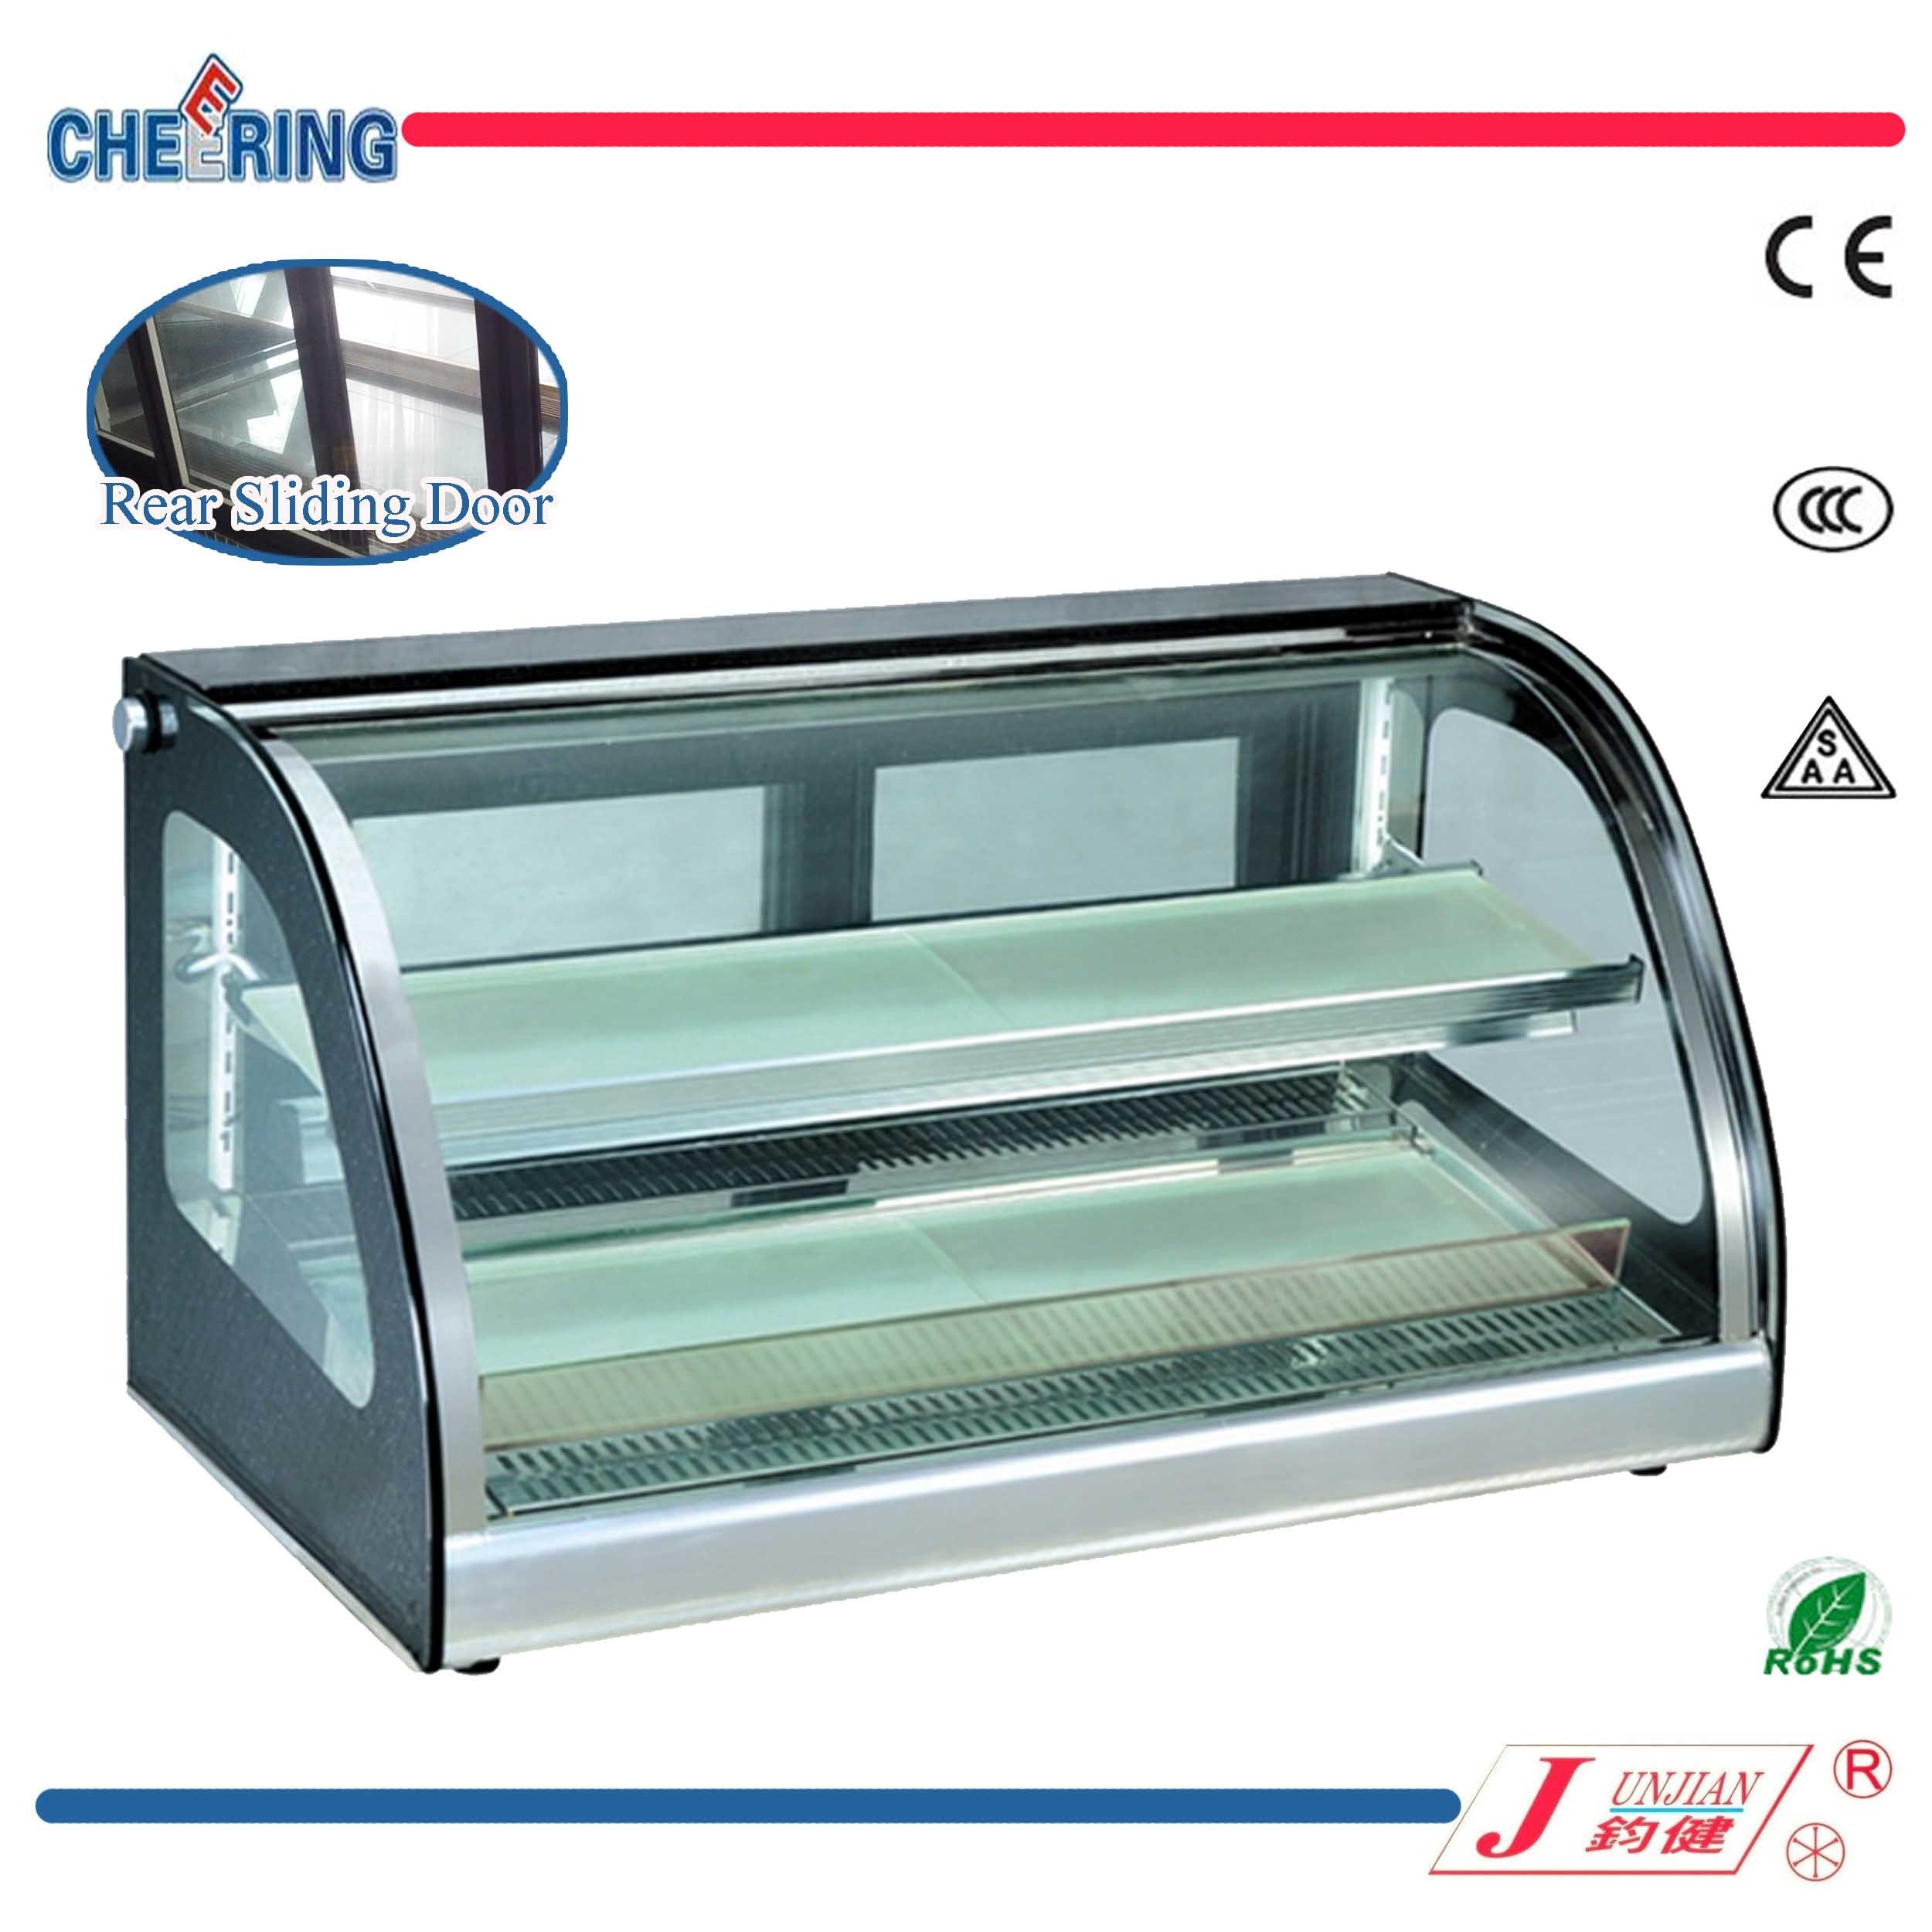 cu turbo ft equipment tgf freezer case merchandising display door countertop n countertops bakery air glass